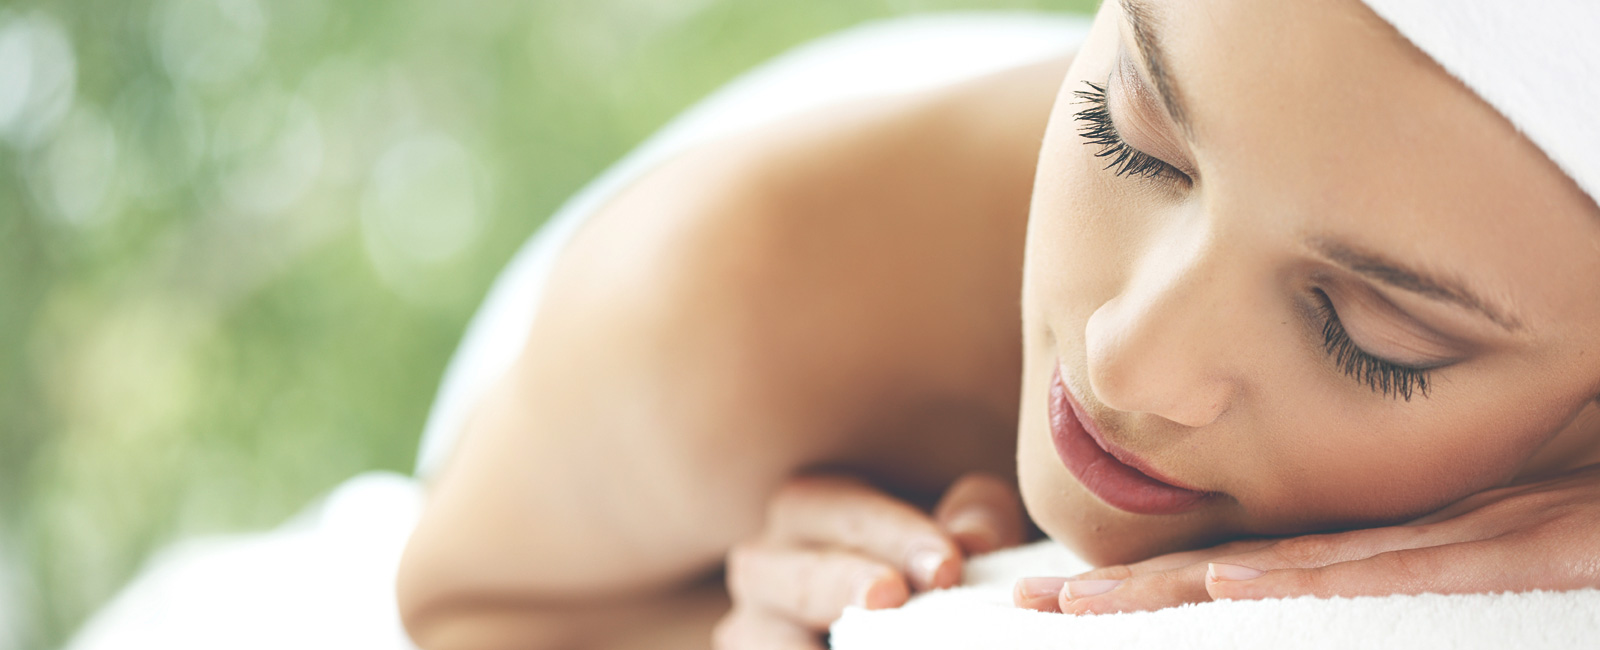 Body exfoliation treatment at spa in ponte vedra